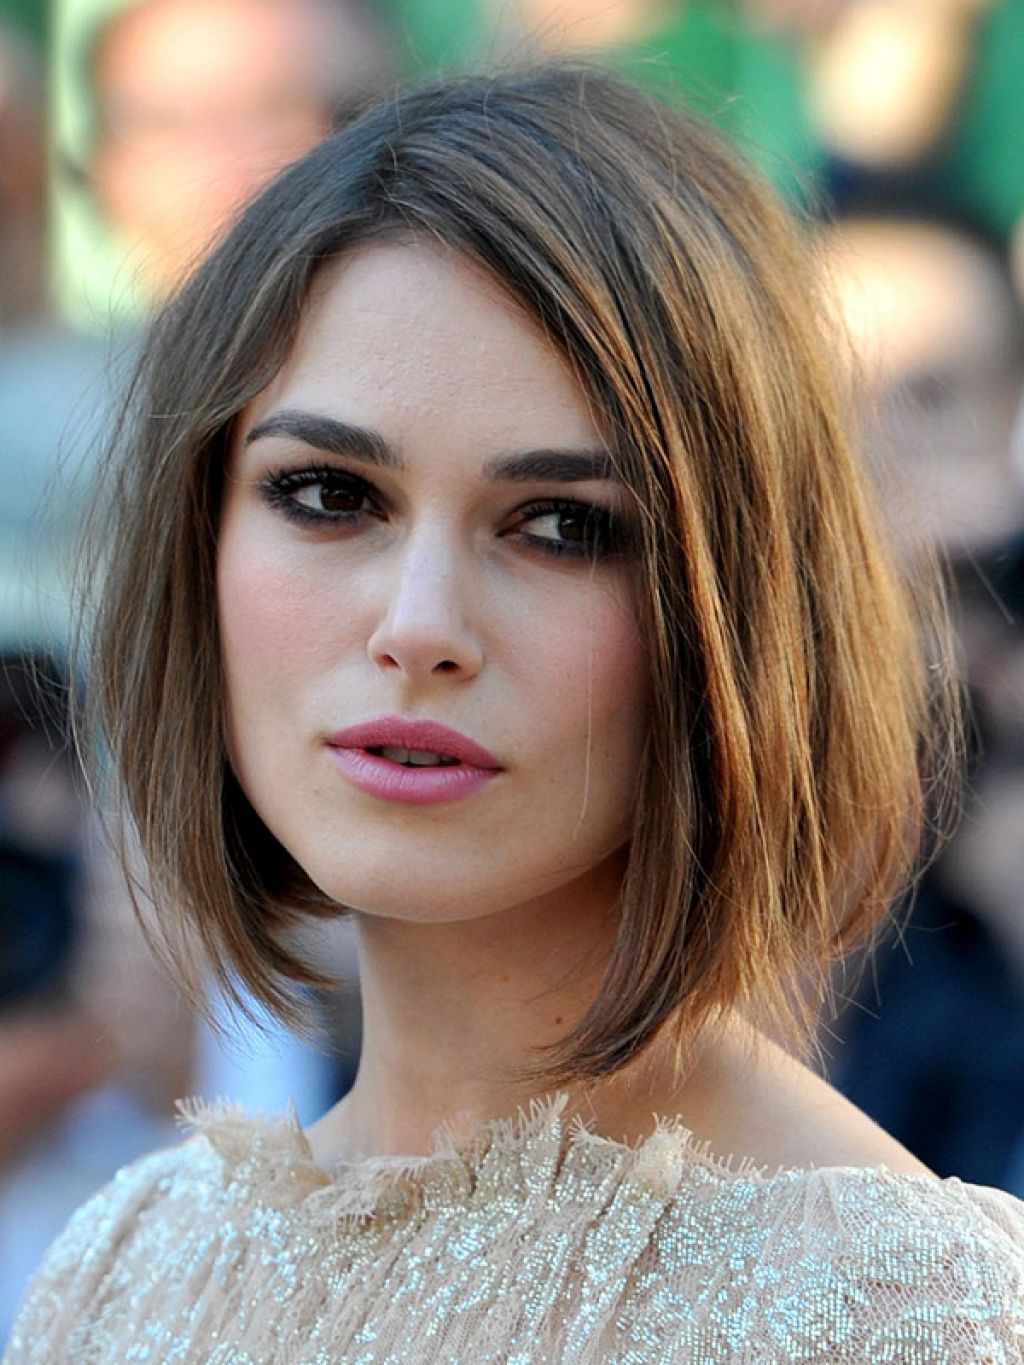 pictures-of-medium-length-bob-hairstyles-1 - talkin'heads